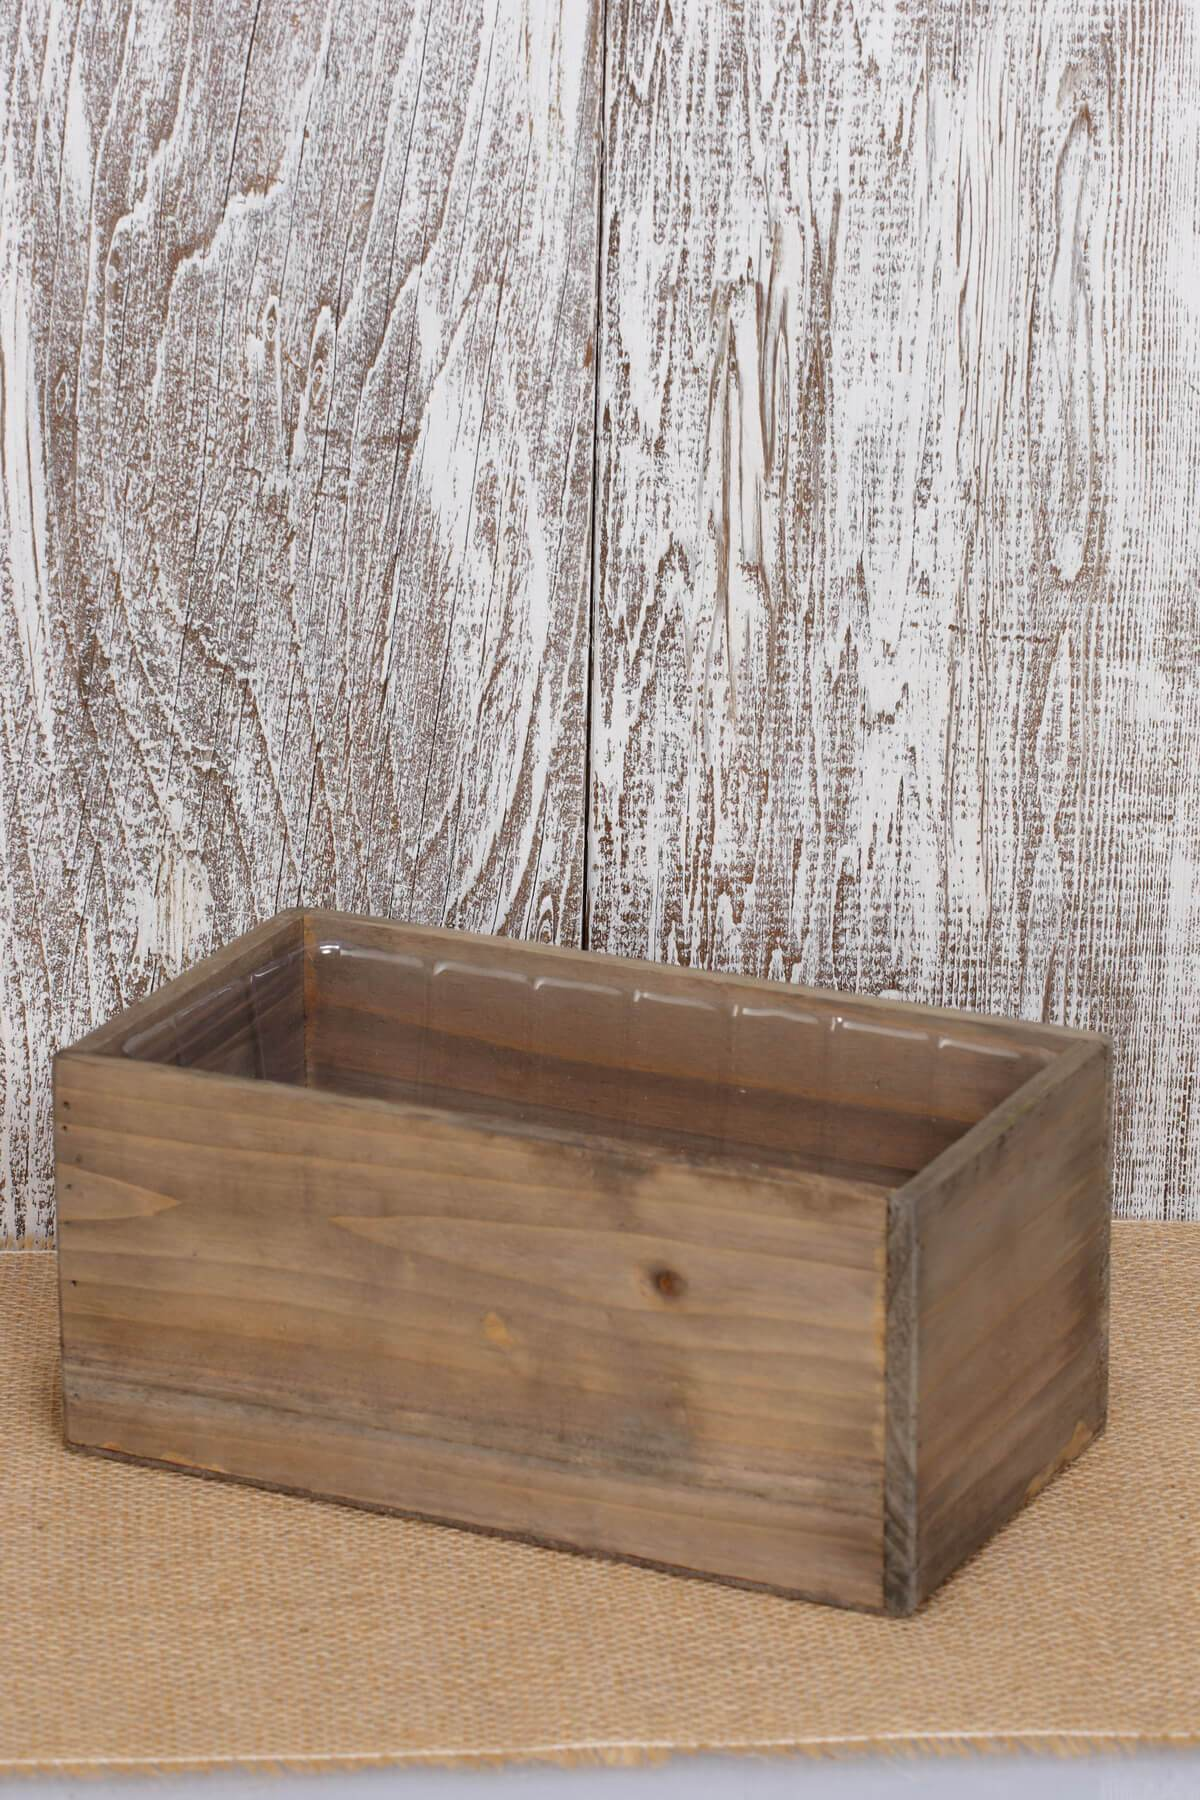 planter box wood 10x5